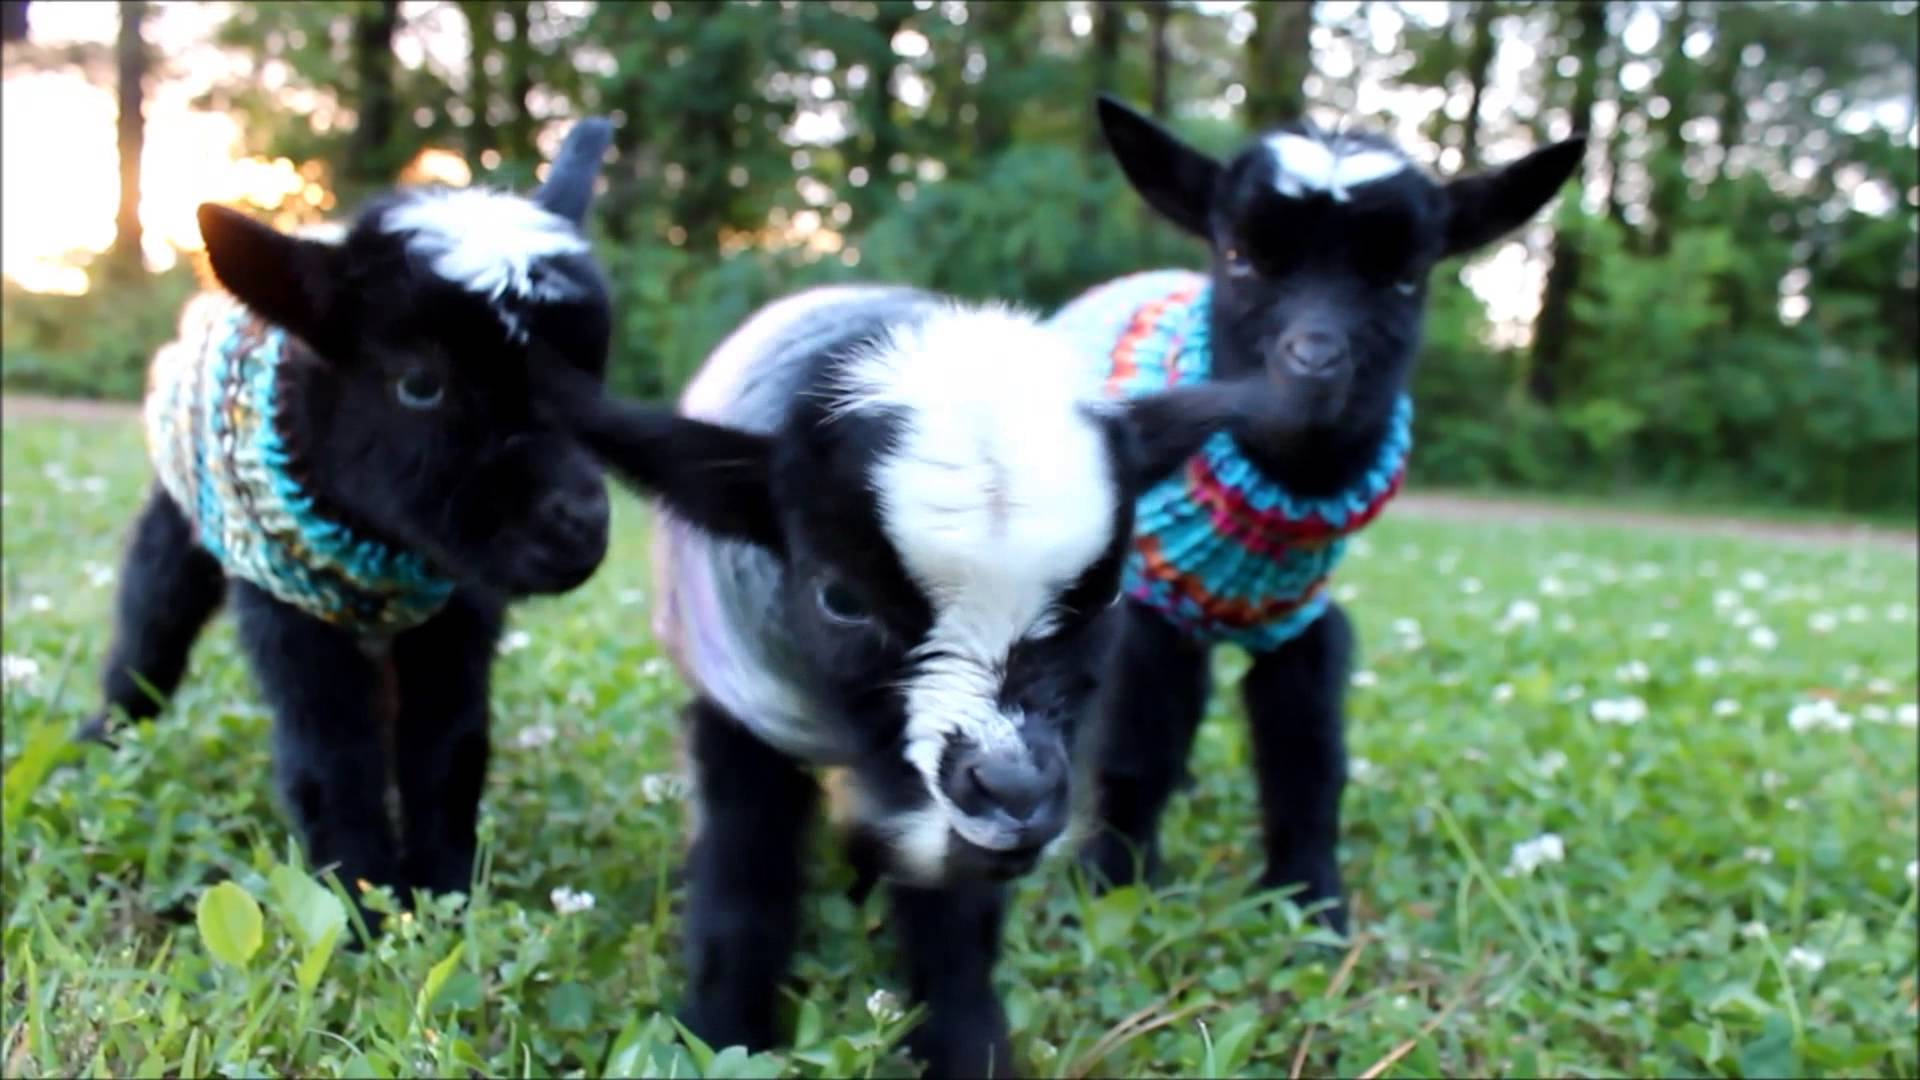 Cute Baby Whatsapp Wallpaper A Trio Of Newborn Baby Goats Stay Warm On A Chilly Evening